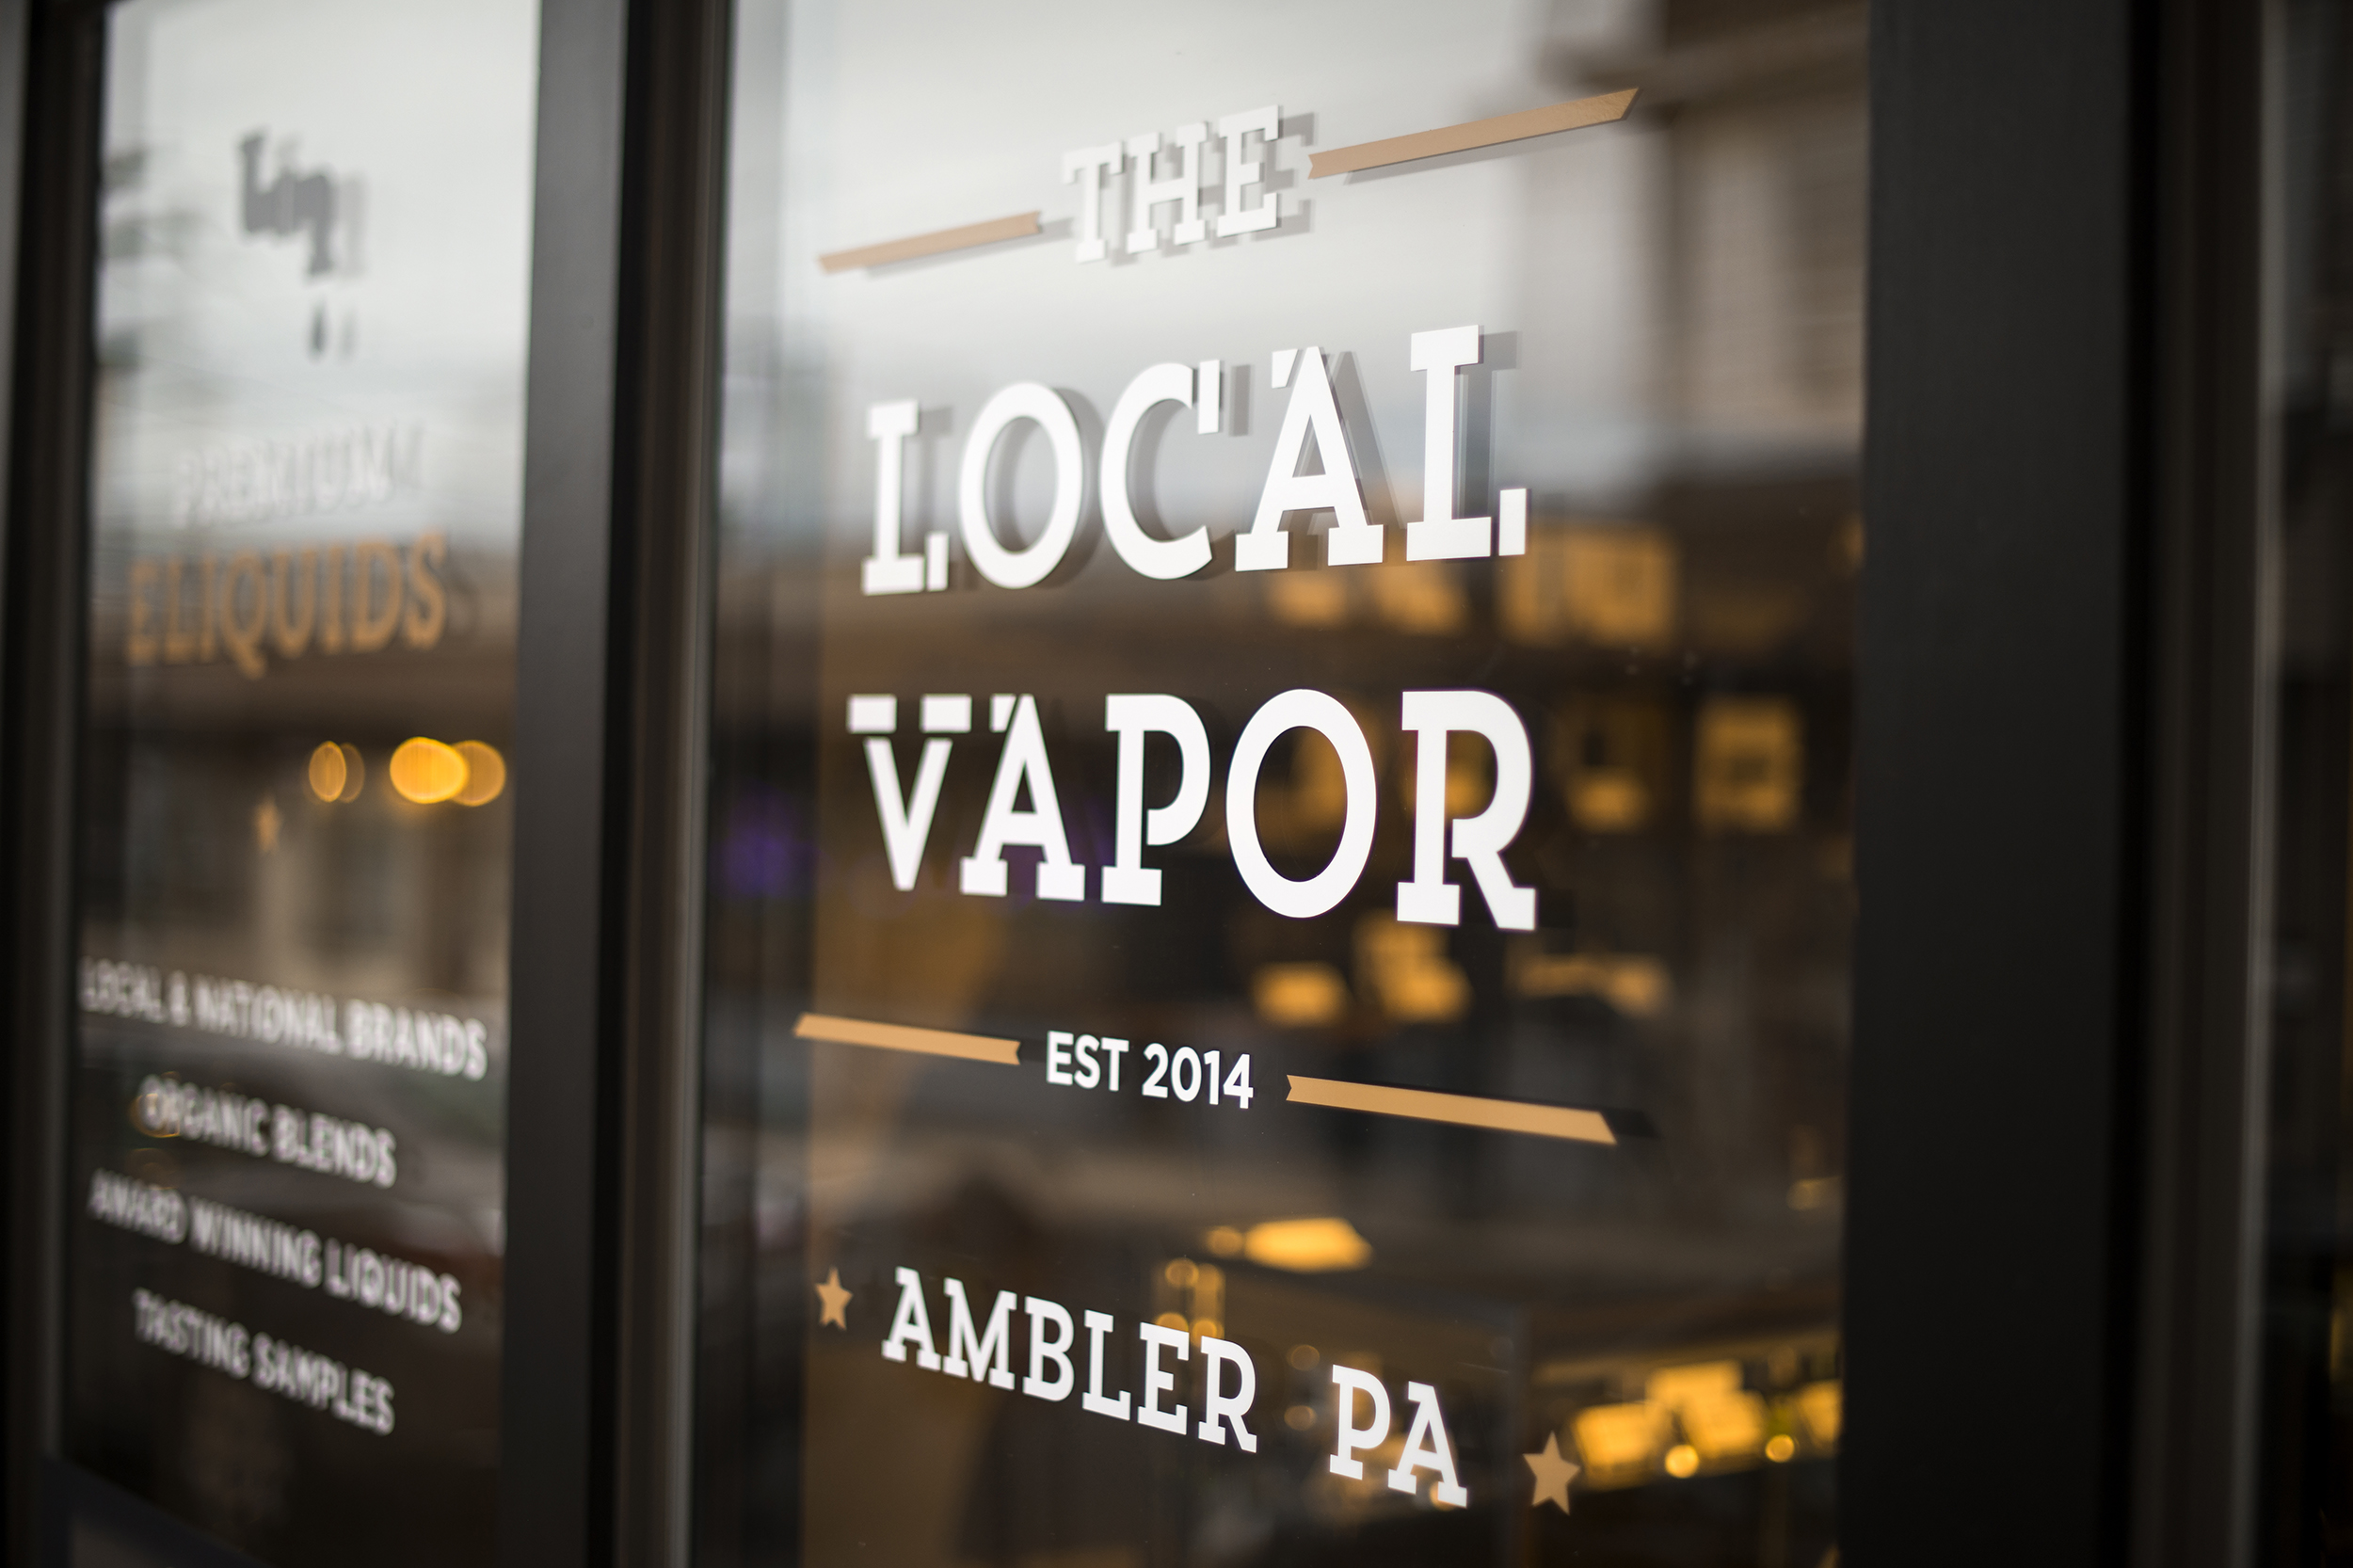 The-Local-Vapor-Doylestown-PA.jpg